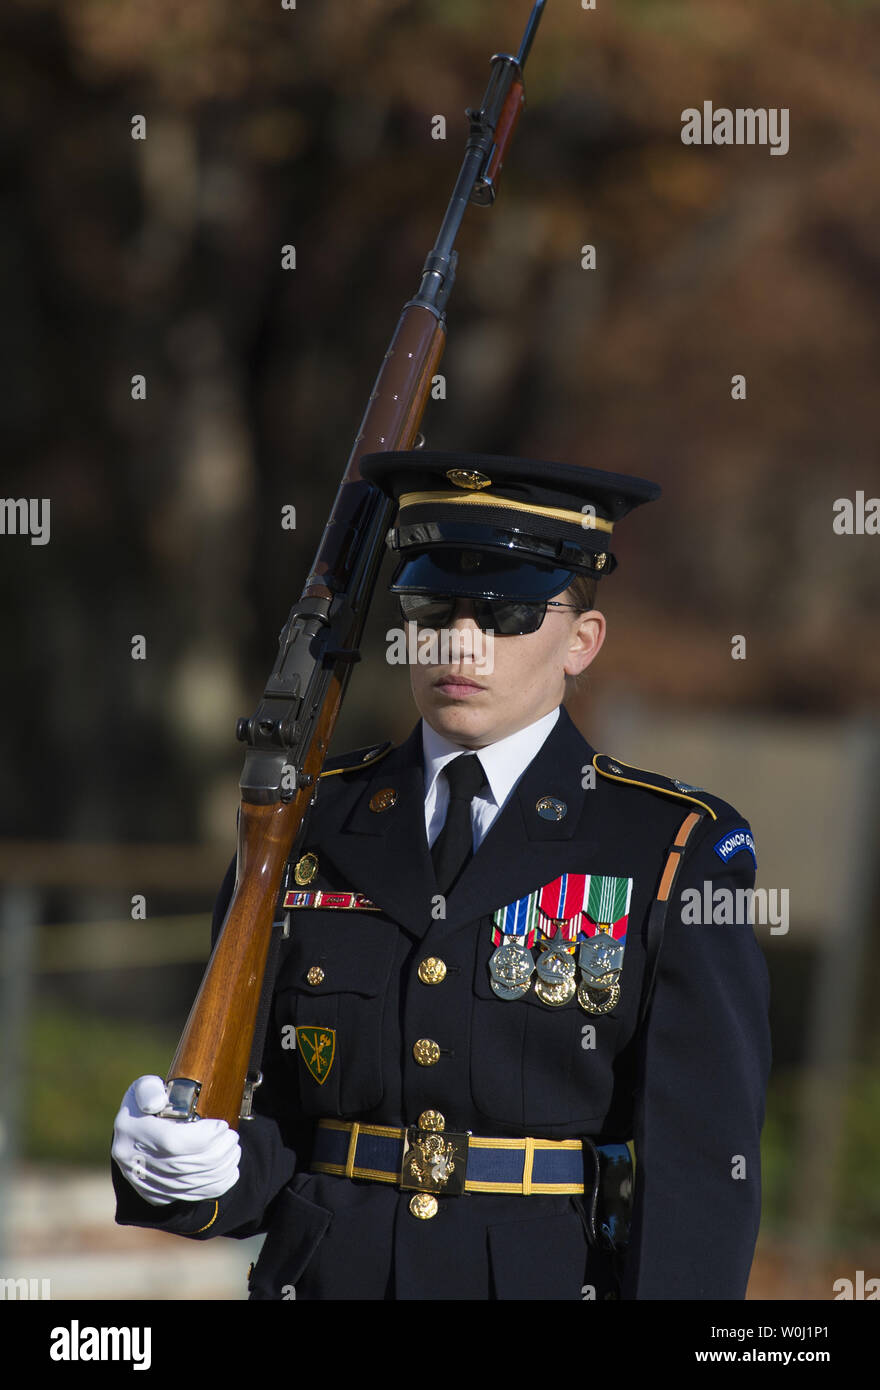 Sgt. Ruth A. Hanks, who is training to receive her Tomb Badge, guards the Tomb of the Unkowns at Arlington National Cemetery in Arlington, Va., November 11, 2015.  There have been only 3 female Tomb Guards who have earned their Tomb Badge.  Photo by Molly Riley/UPI - Stock Image